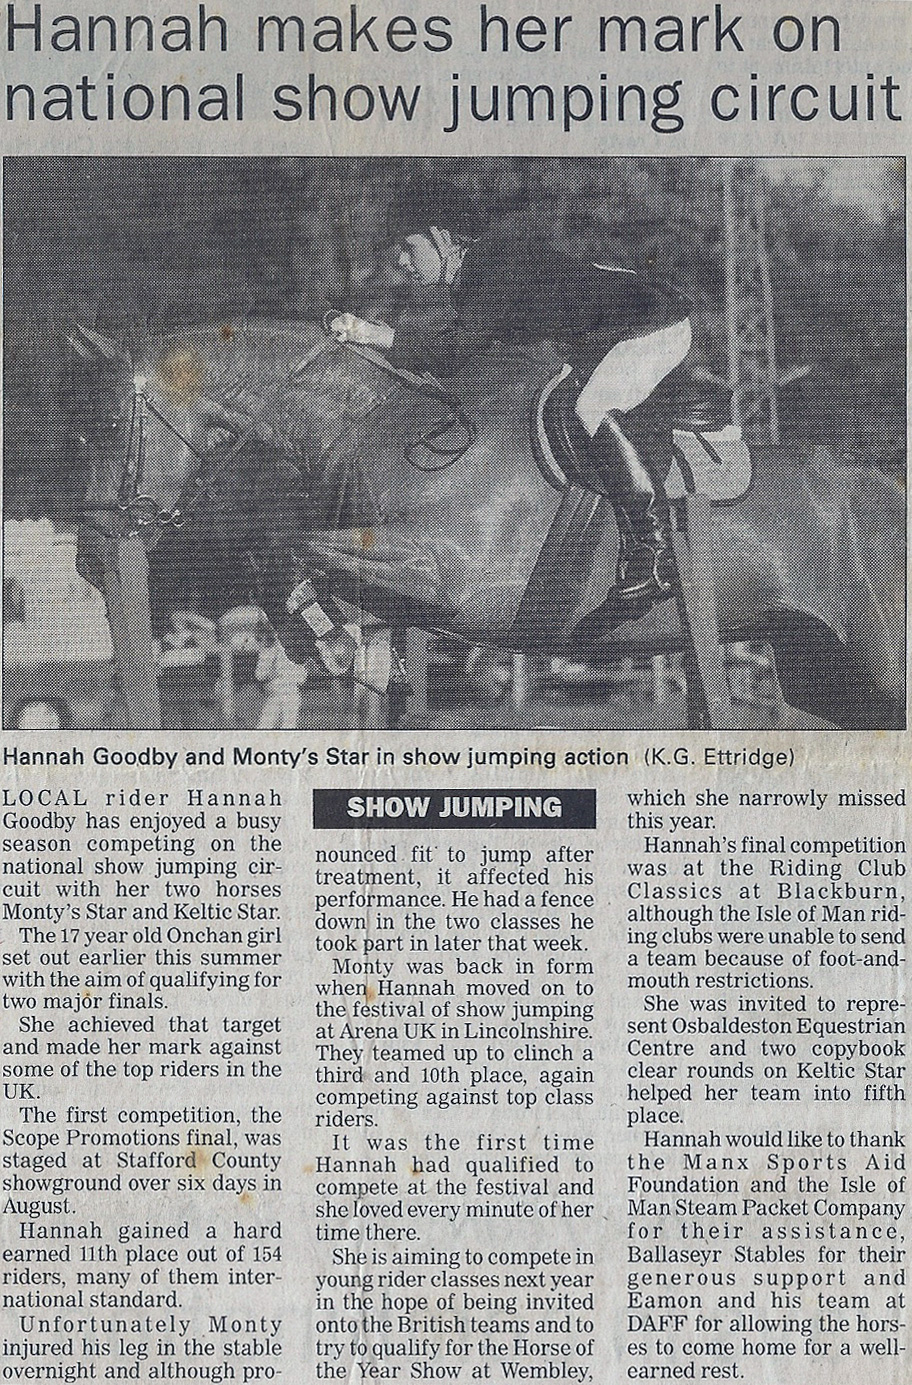 Hannah makes her mark on national showjumping circuit 2001